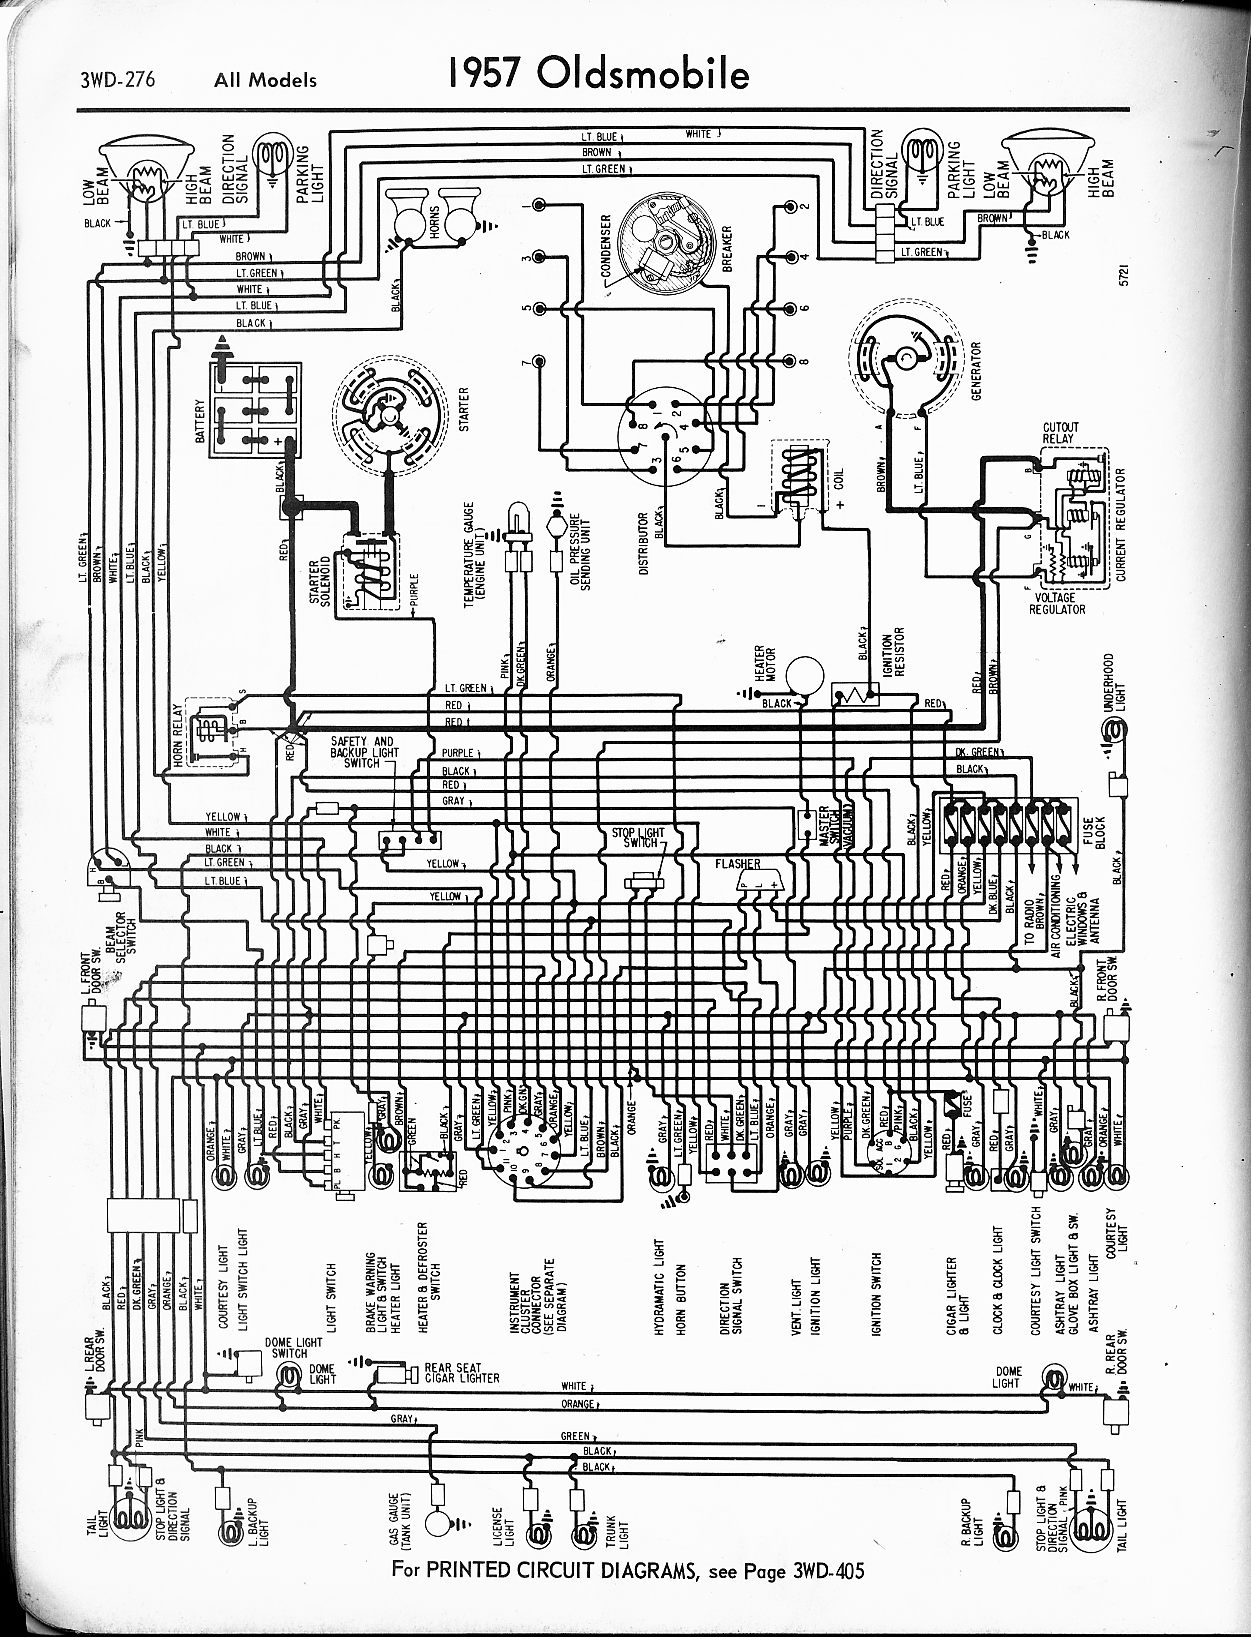 oldsmobile wiring diagrams the old car manual project oldsmobile wiring diagrams